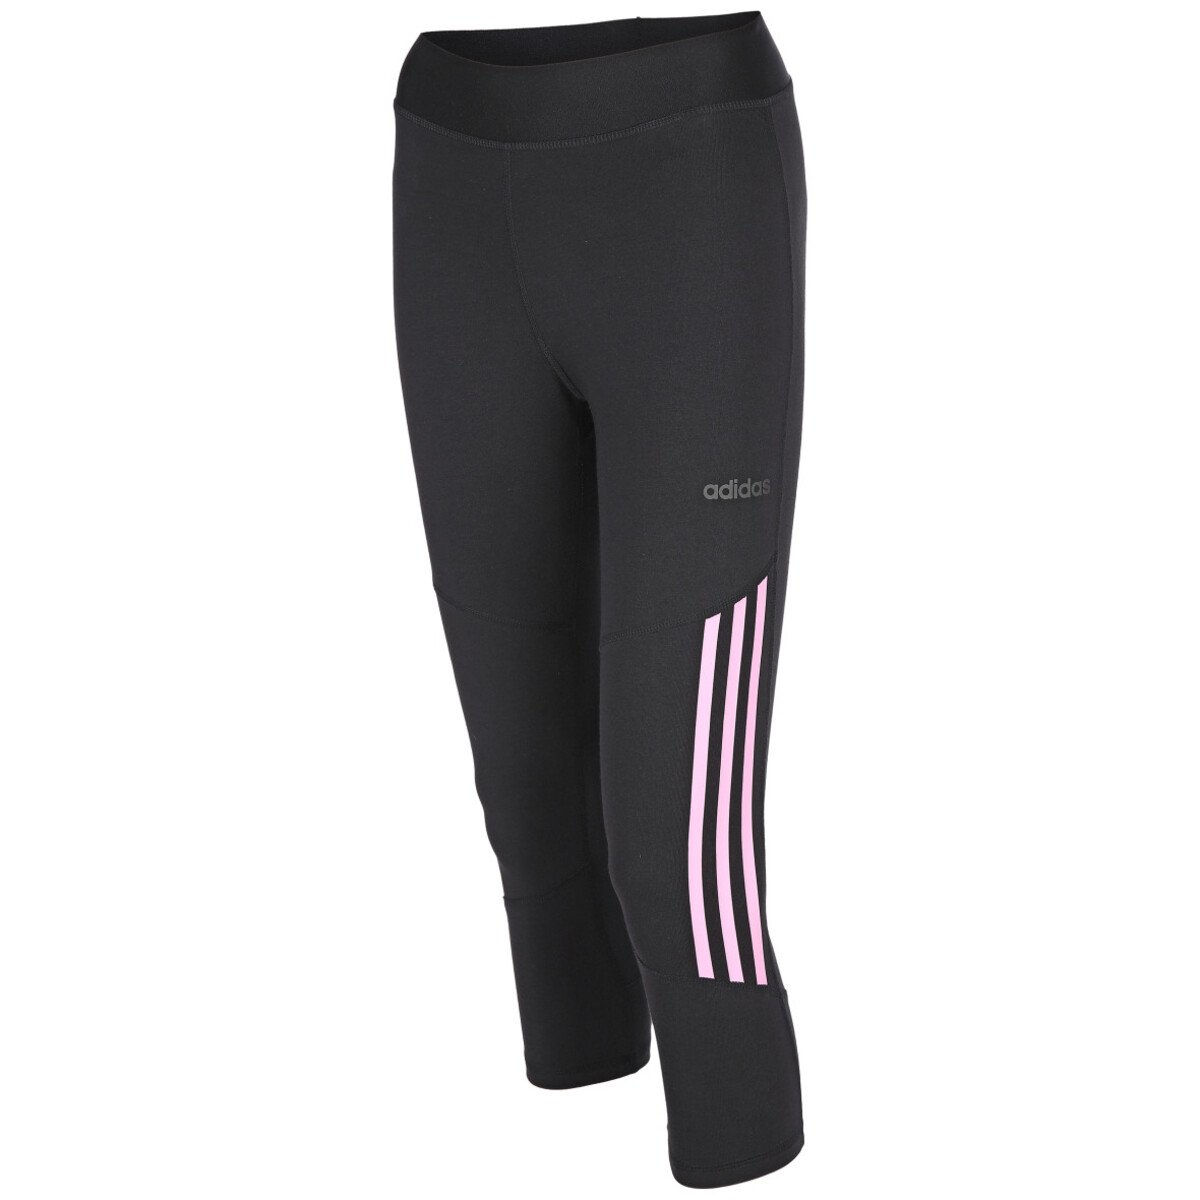 Bild 1 von Damen Sportleggings